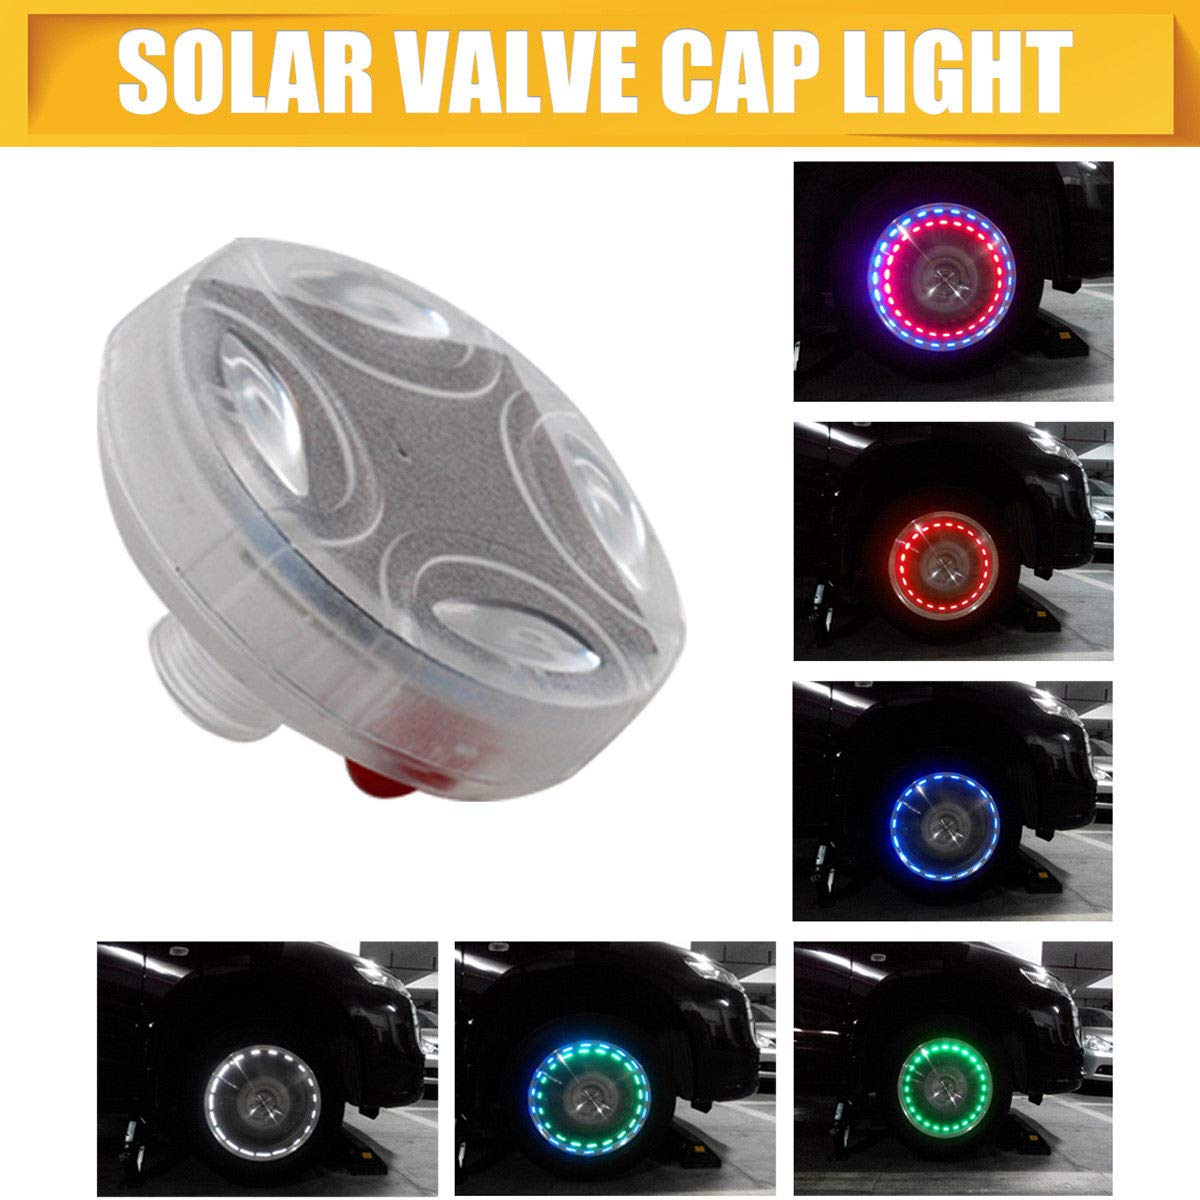 MASO Flash Wheel Light, Colorful LED Solar Wheel Hub Tire Lights, Tyre Valve Cap Strobe Lamp Waterproof Kit Four Modes for Car Vehicle Motorcycle Bike (American valve)